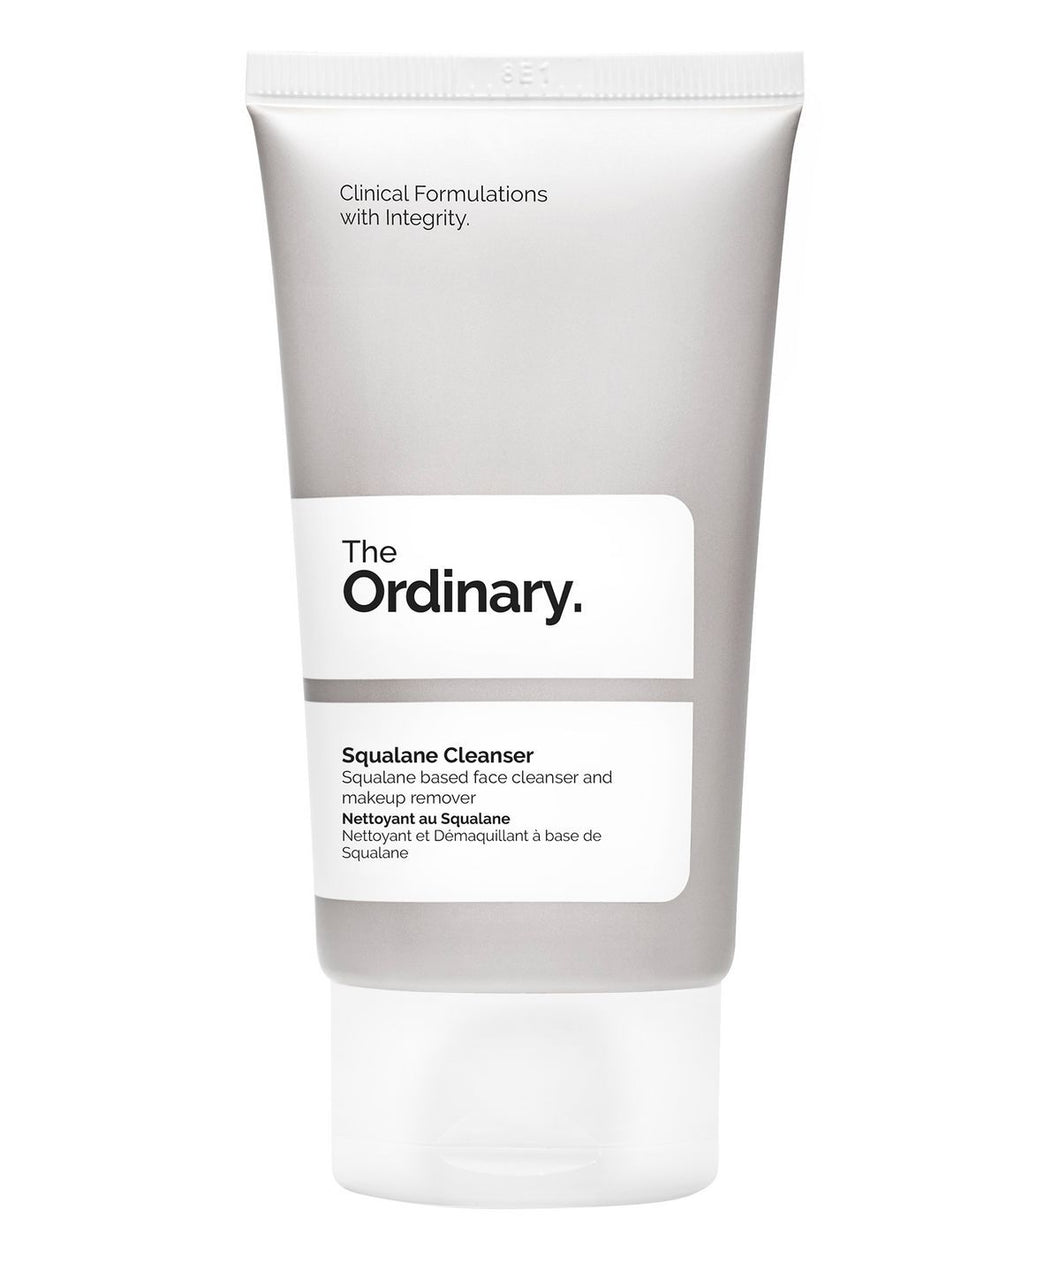 Squalane Cleanser by The Ordinary in UAE at Shopey.ae